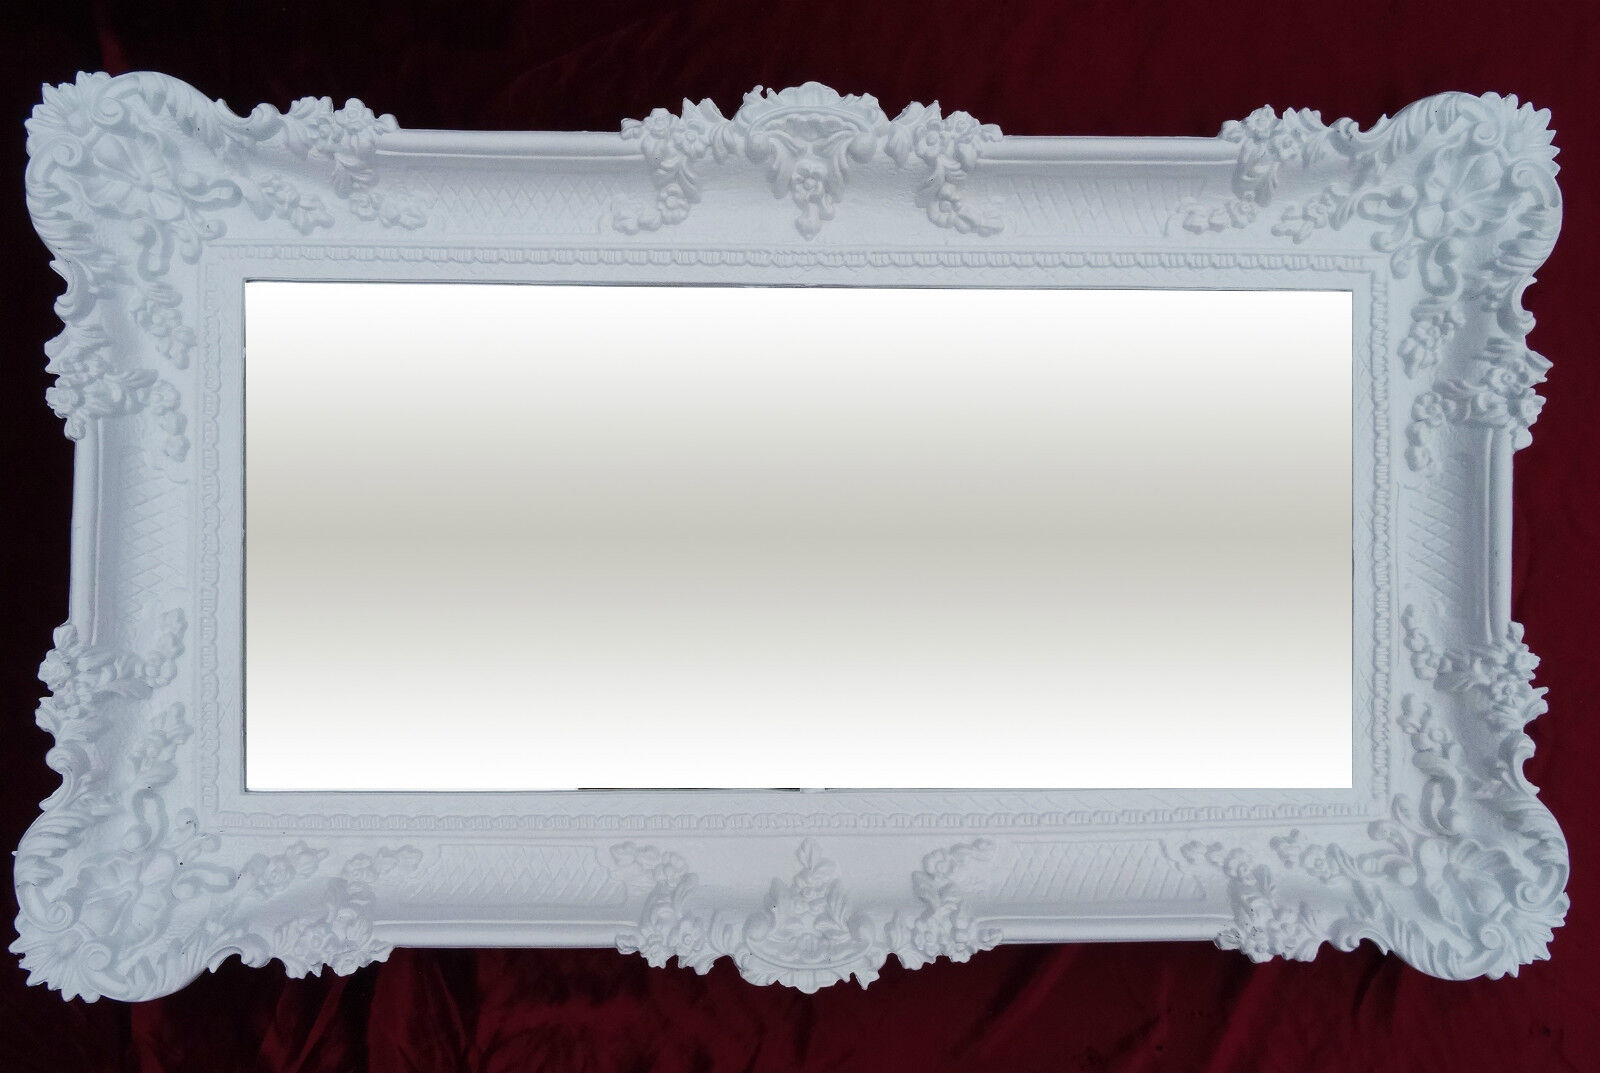 xxl wall mirror white 96x57 antique baroque shabby chic. Black Bedroom Furniture Sets. Home Design Ideas